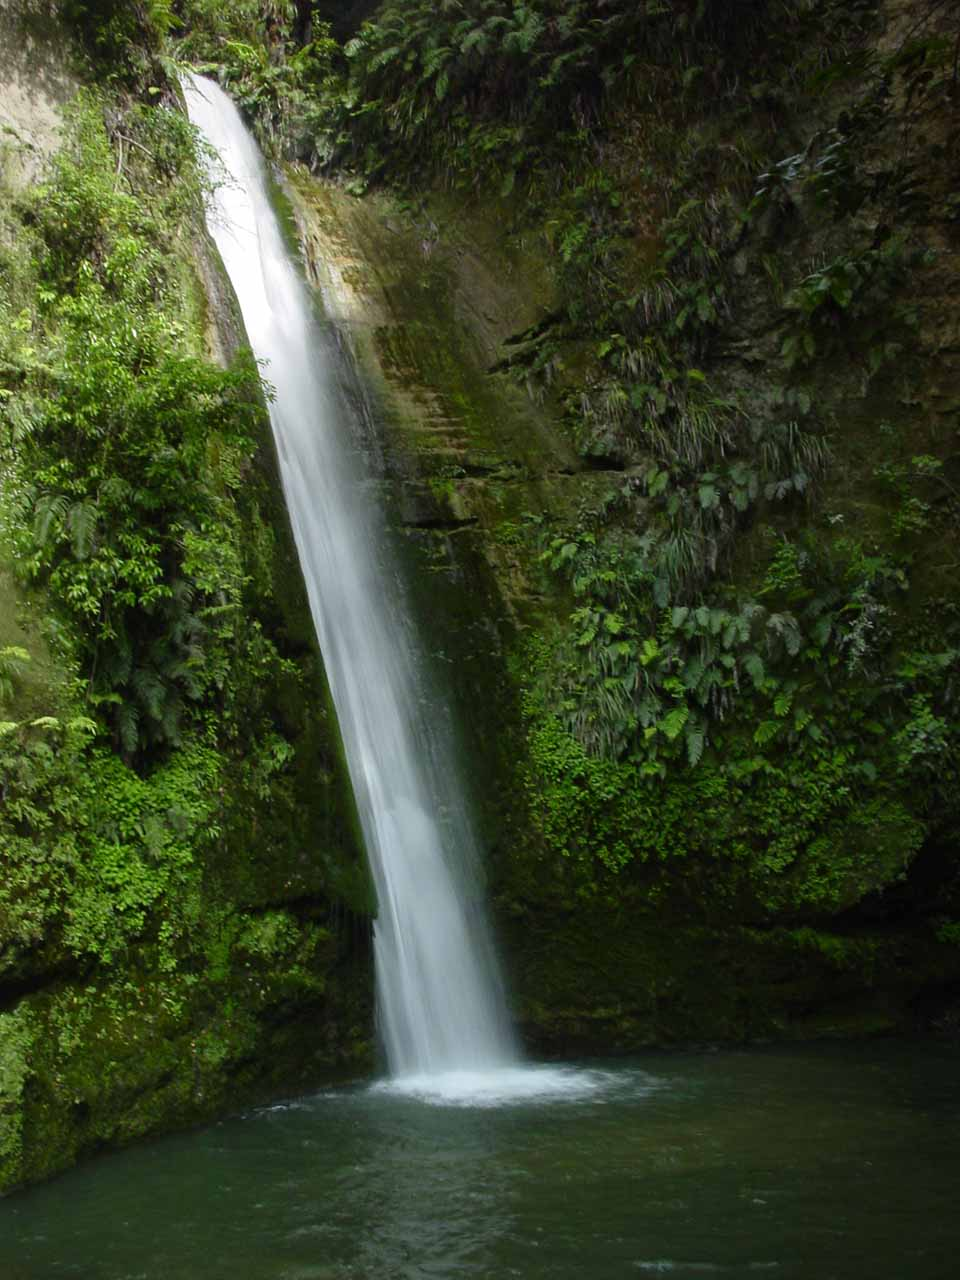 This was the attractive Te Ana Falls, which was the second of the waterfalls that we saw in the Tangoio Falls Scenic Reserve